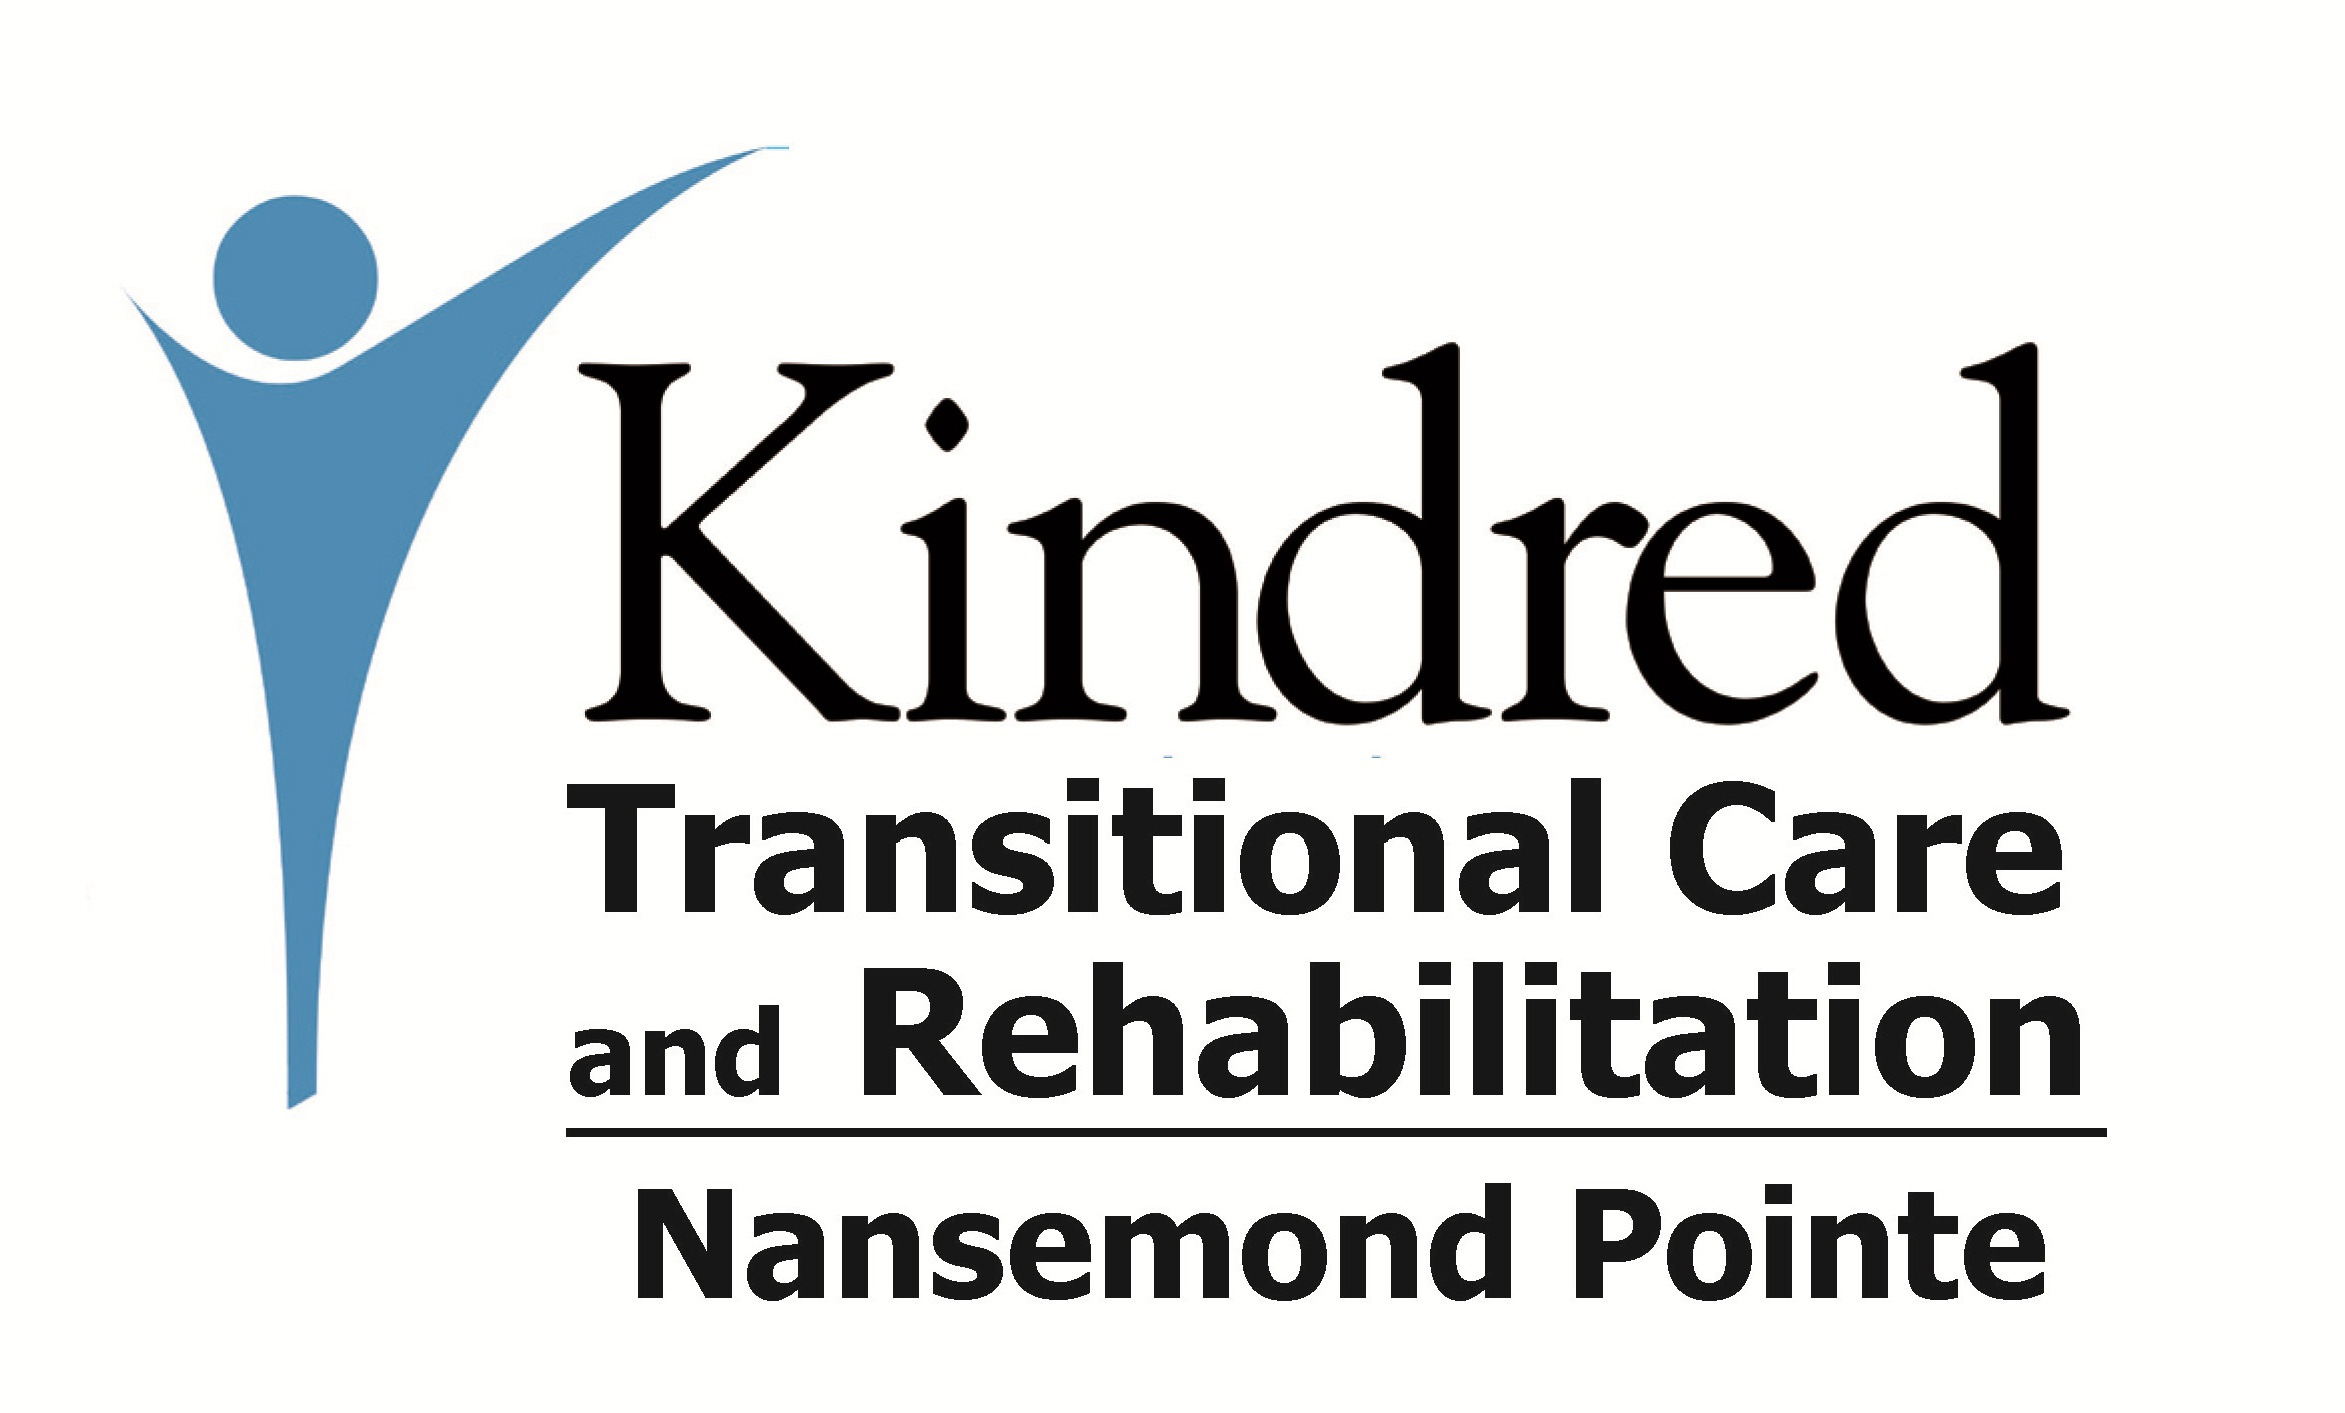 2-Kindred-Nansemond Pointe